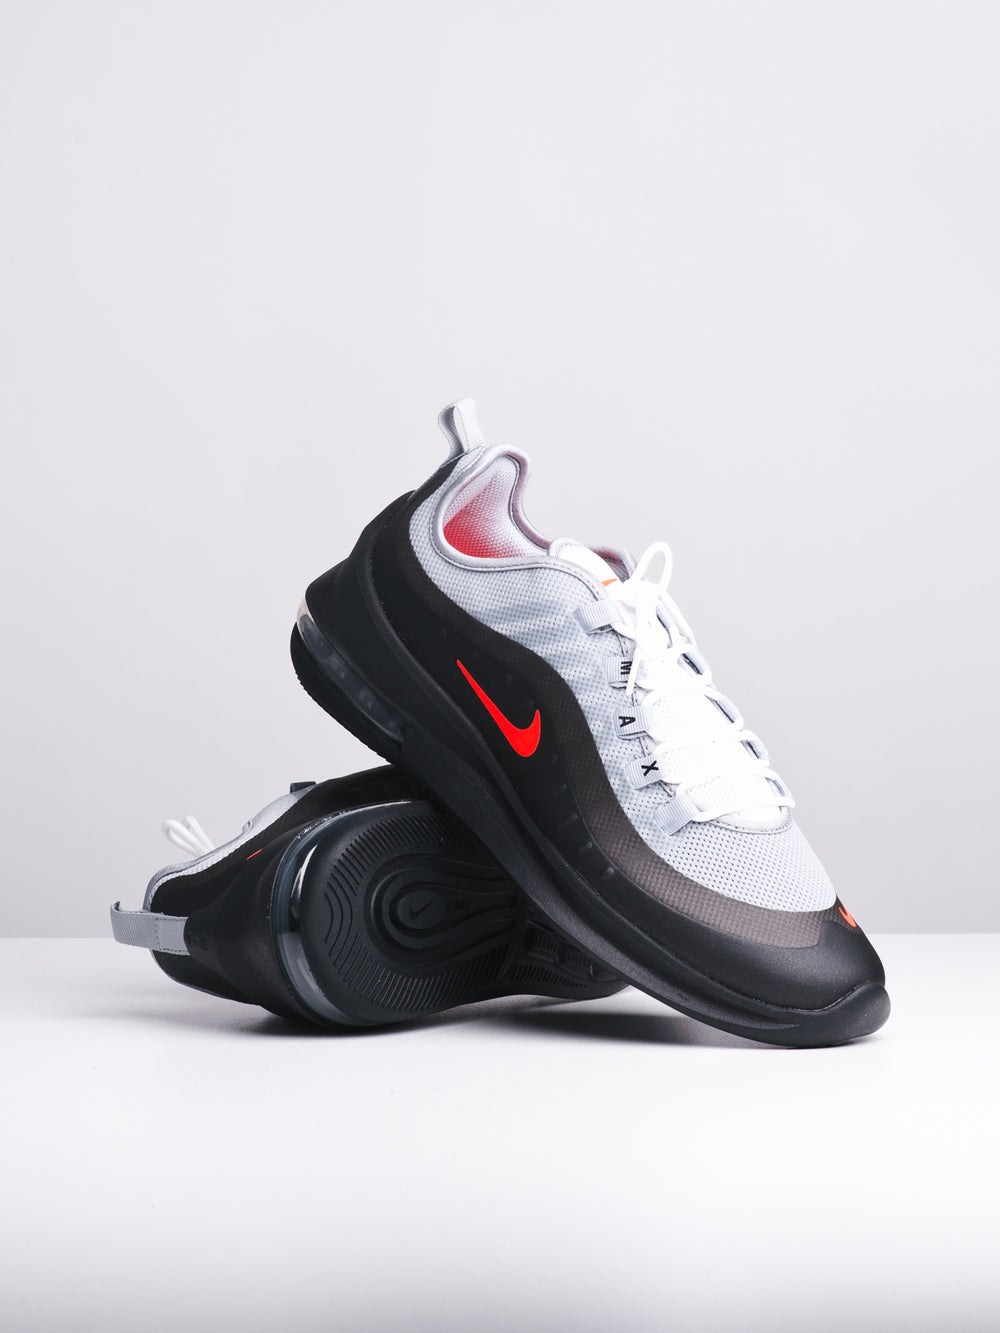 MENS AIR MAX AXIS GREYCRIMSON SNEAKERS